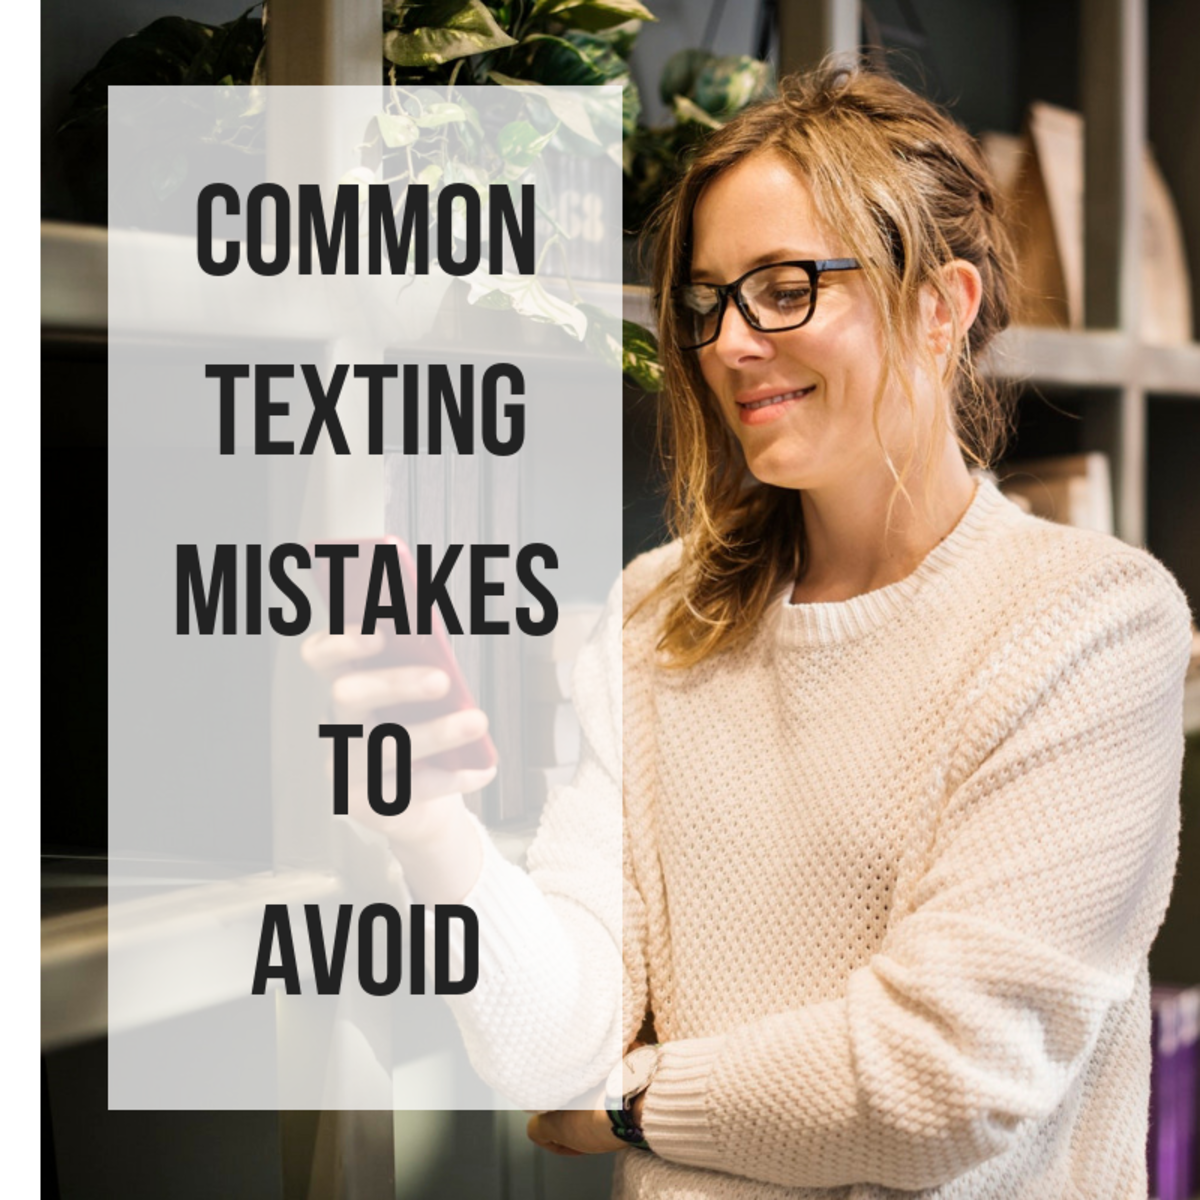 Whether you're texting your partner or your colleague, here are some things you should never do by text.